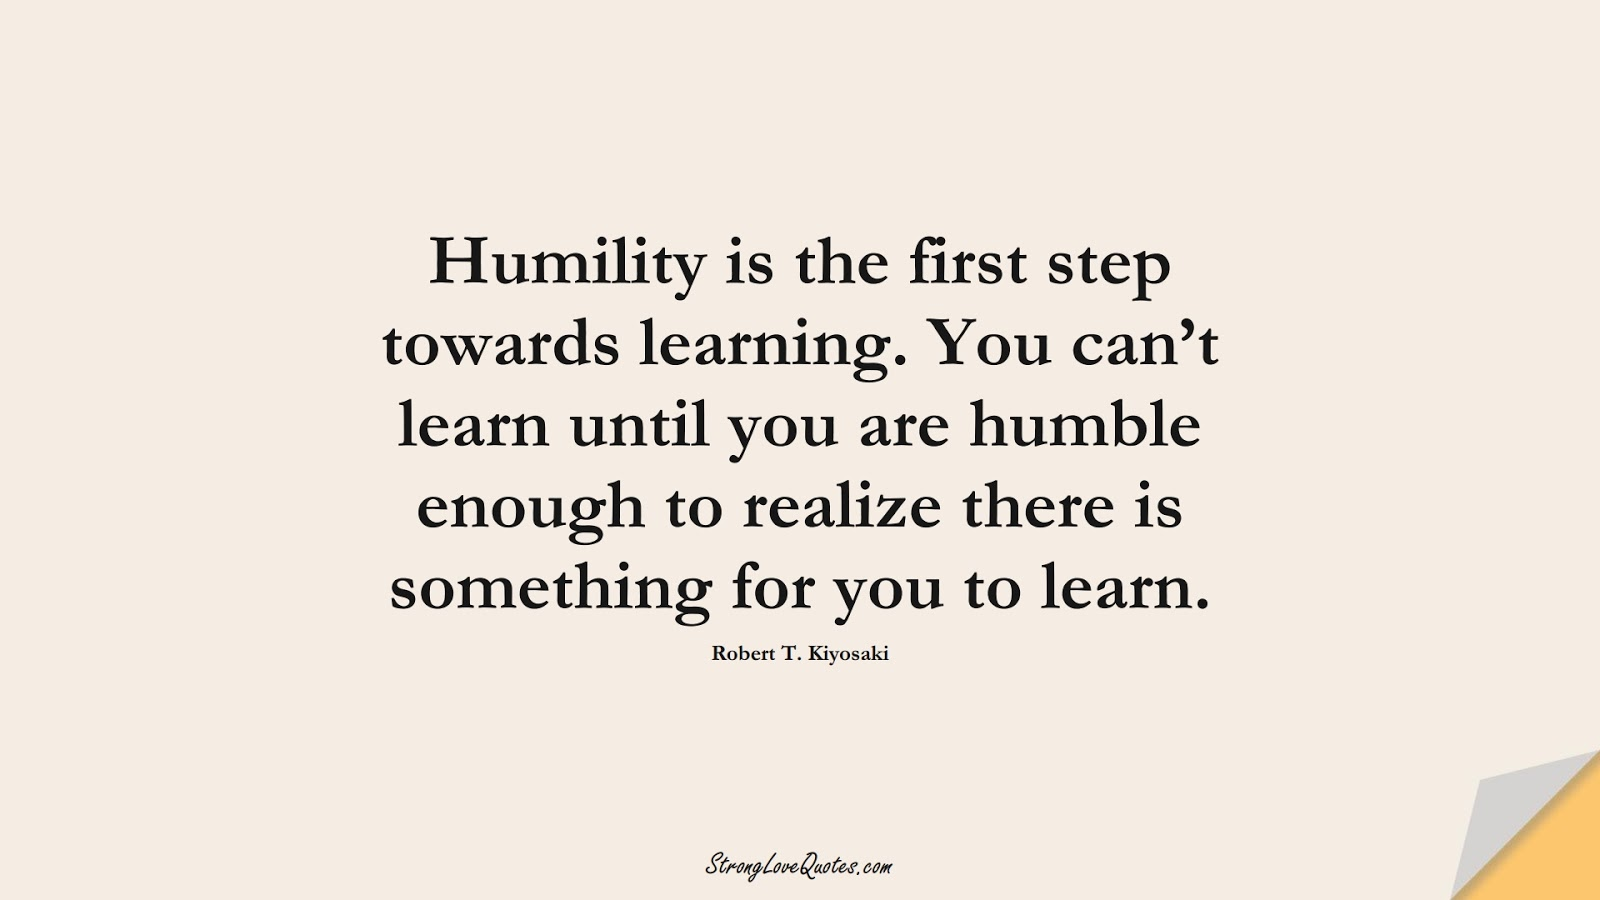 Humility is the first step towards learning. You can't learn until you are humble enough to realize there is something for you to learn. (Robert T. Kiyosaki);  #LearningQuotes